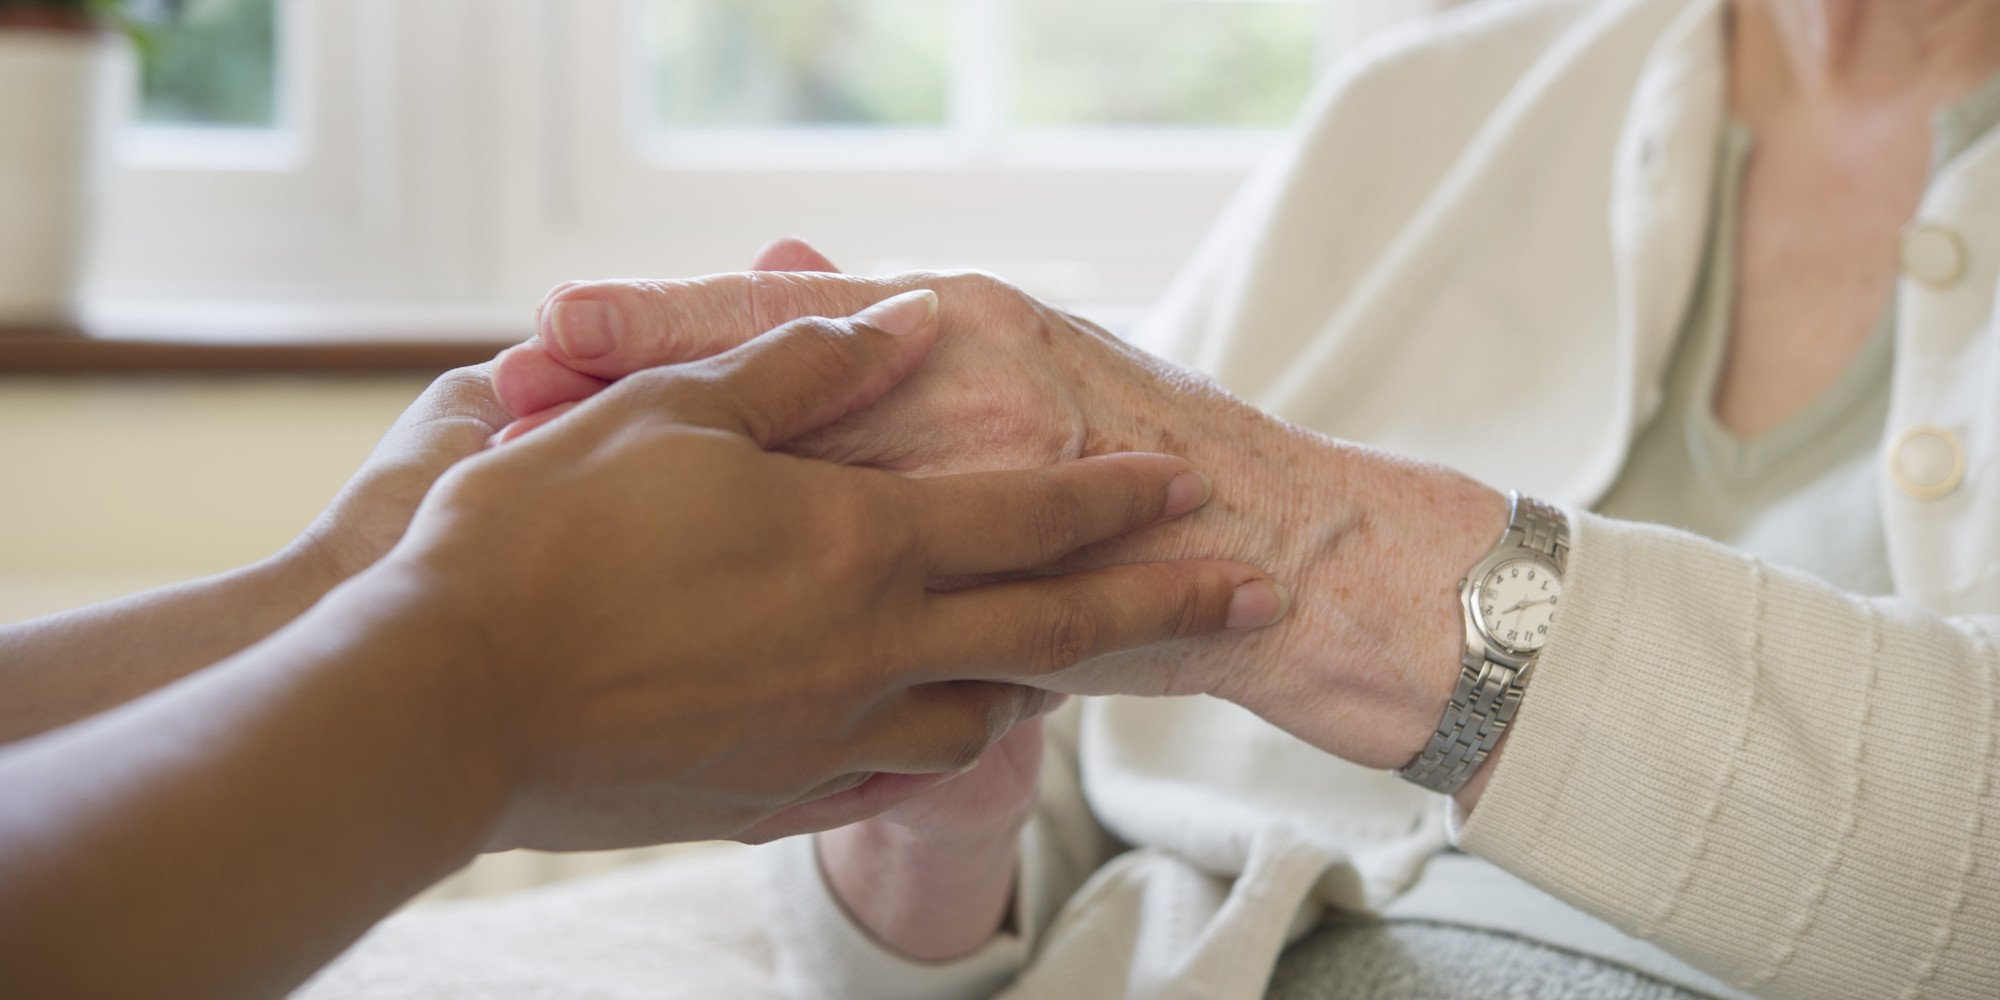 Young caregiver embracing the hands of an elderly woman